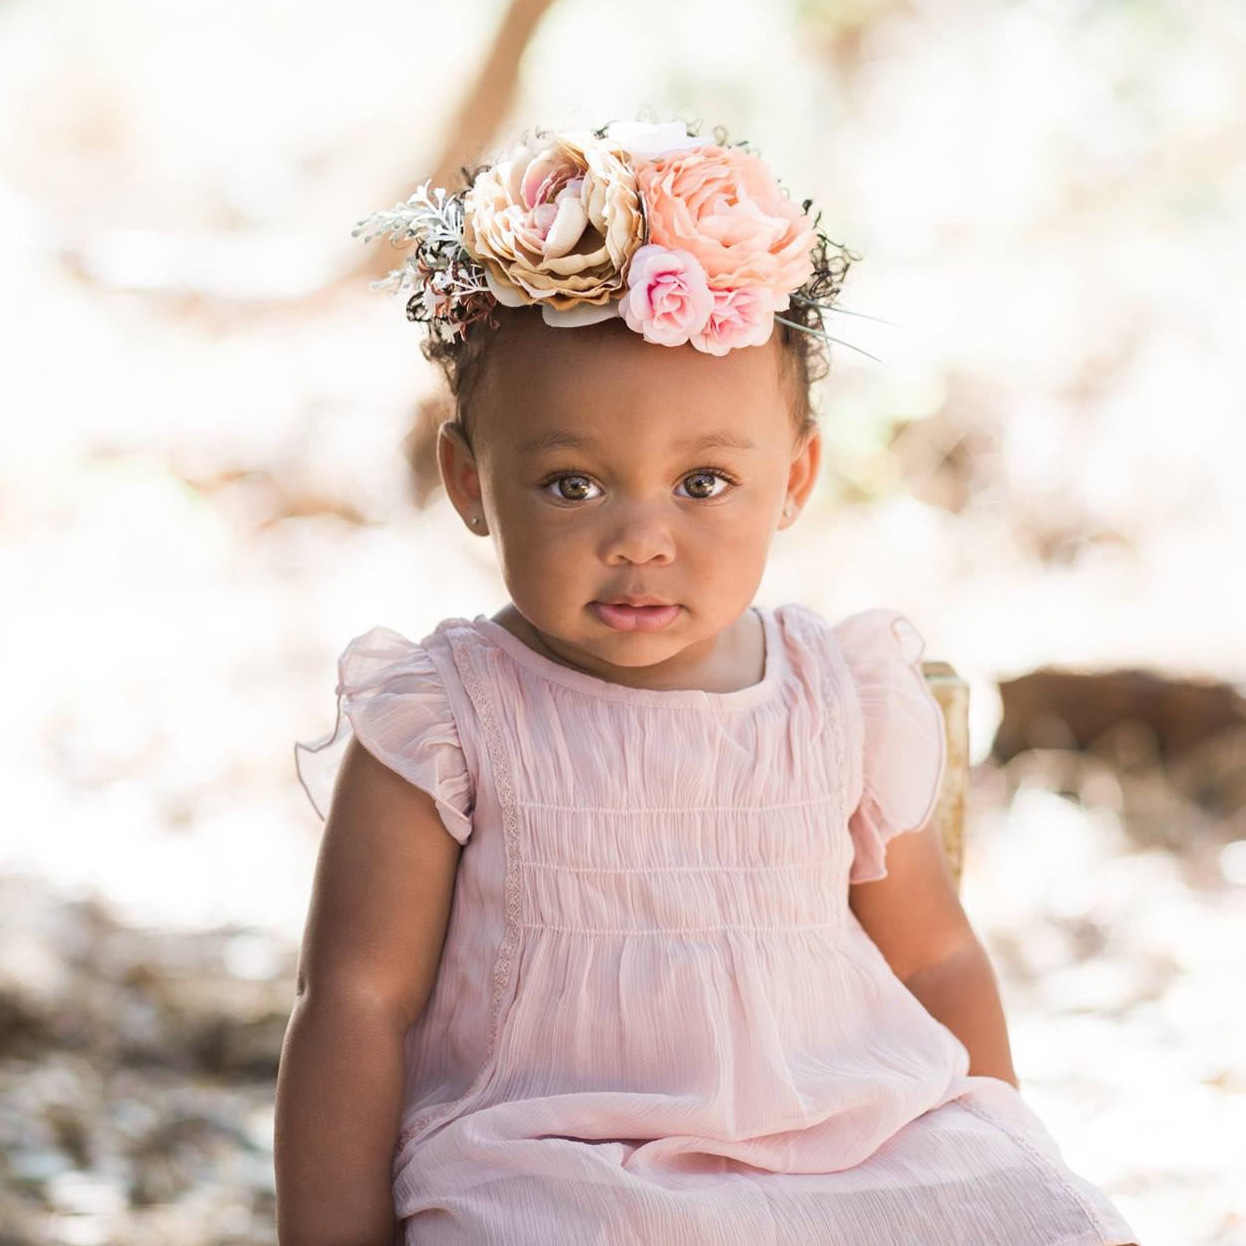 Baby Girl Headbands Floral Crown Kids Flower Toddler Hair Accessories Lovely Newborn Headdress Diy Glitter Headbands for Girls